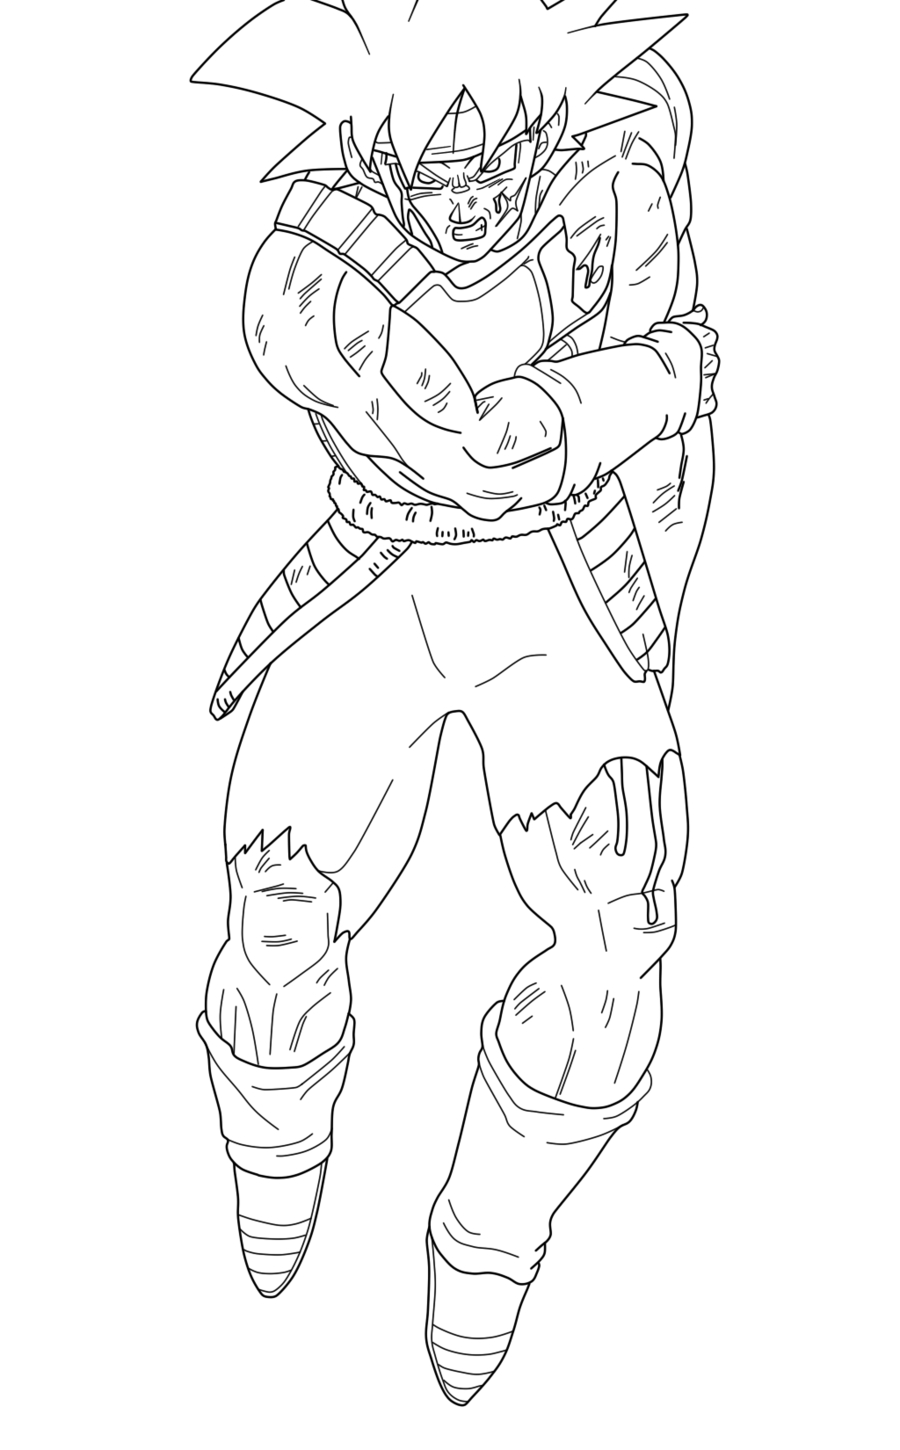 Coloriage bardock dragon ball imprimer et colorier - Dessin de dragon ball super ...